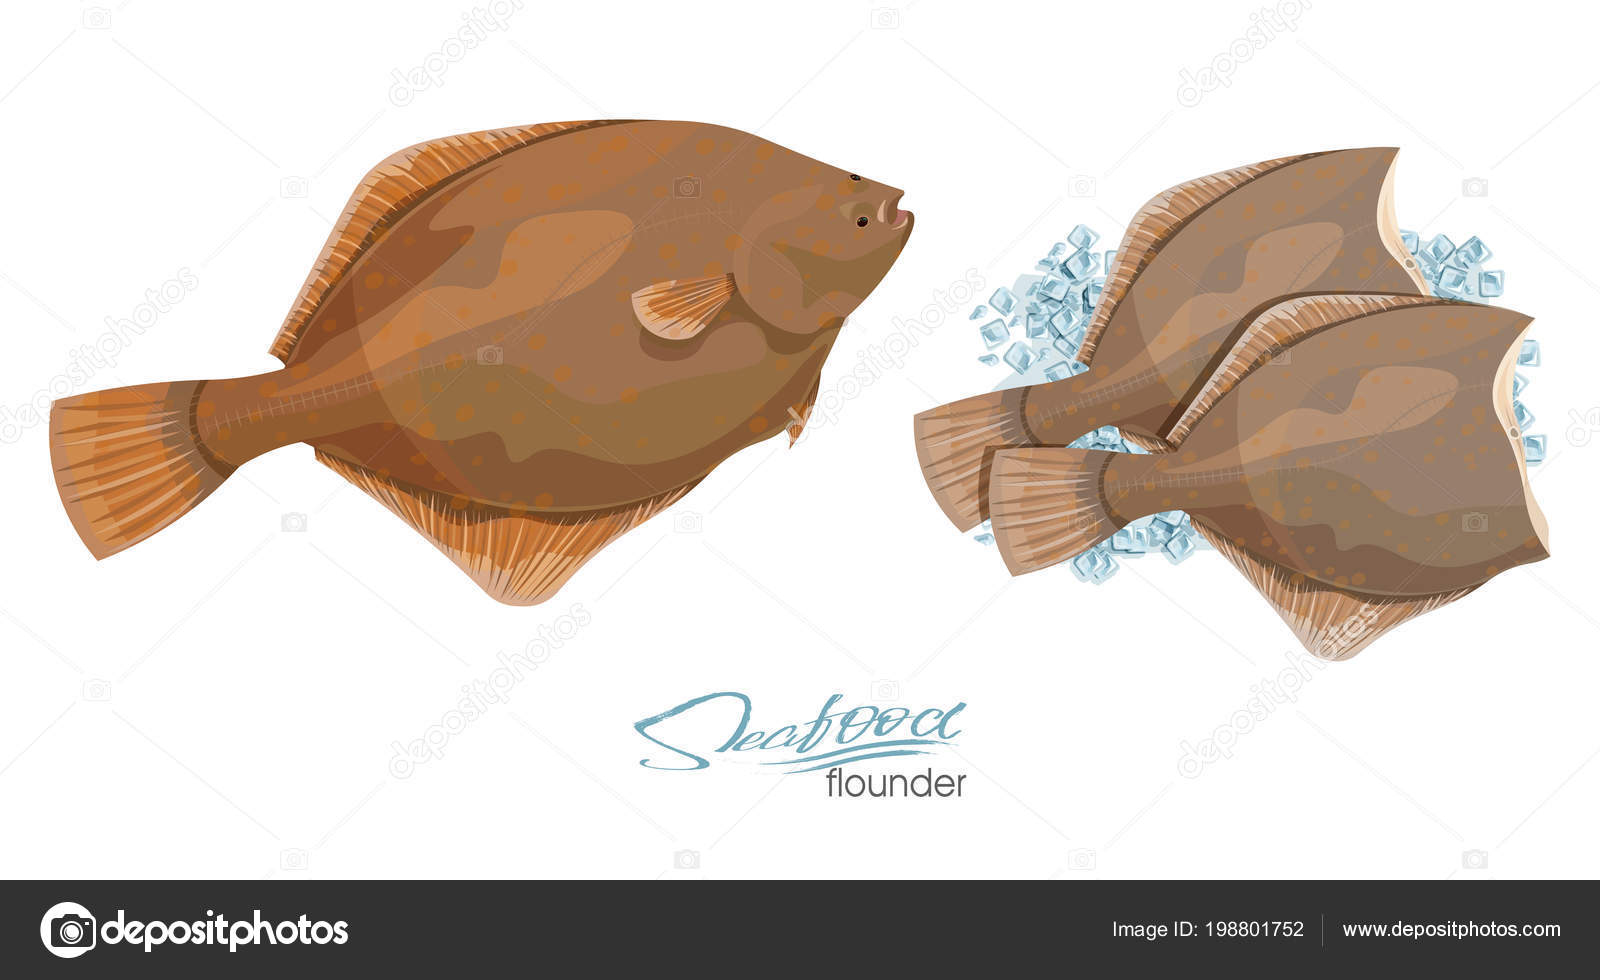 Olive Flounder Vector Illustration Sea Fish On Ice Cubes Isolated On White Background Icon Badge Flounder Fish For Design Seafood Packaging And Market Stock Vector C Irkus Life Gmail Com 198801752 Photo about cooking ingredient series olive flounder. https depositphotos com 198801752 stock illustration olive flounder vector illustration sea html